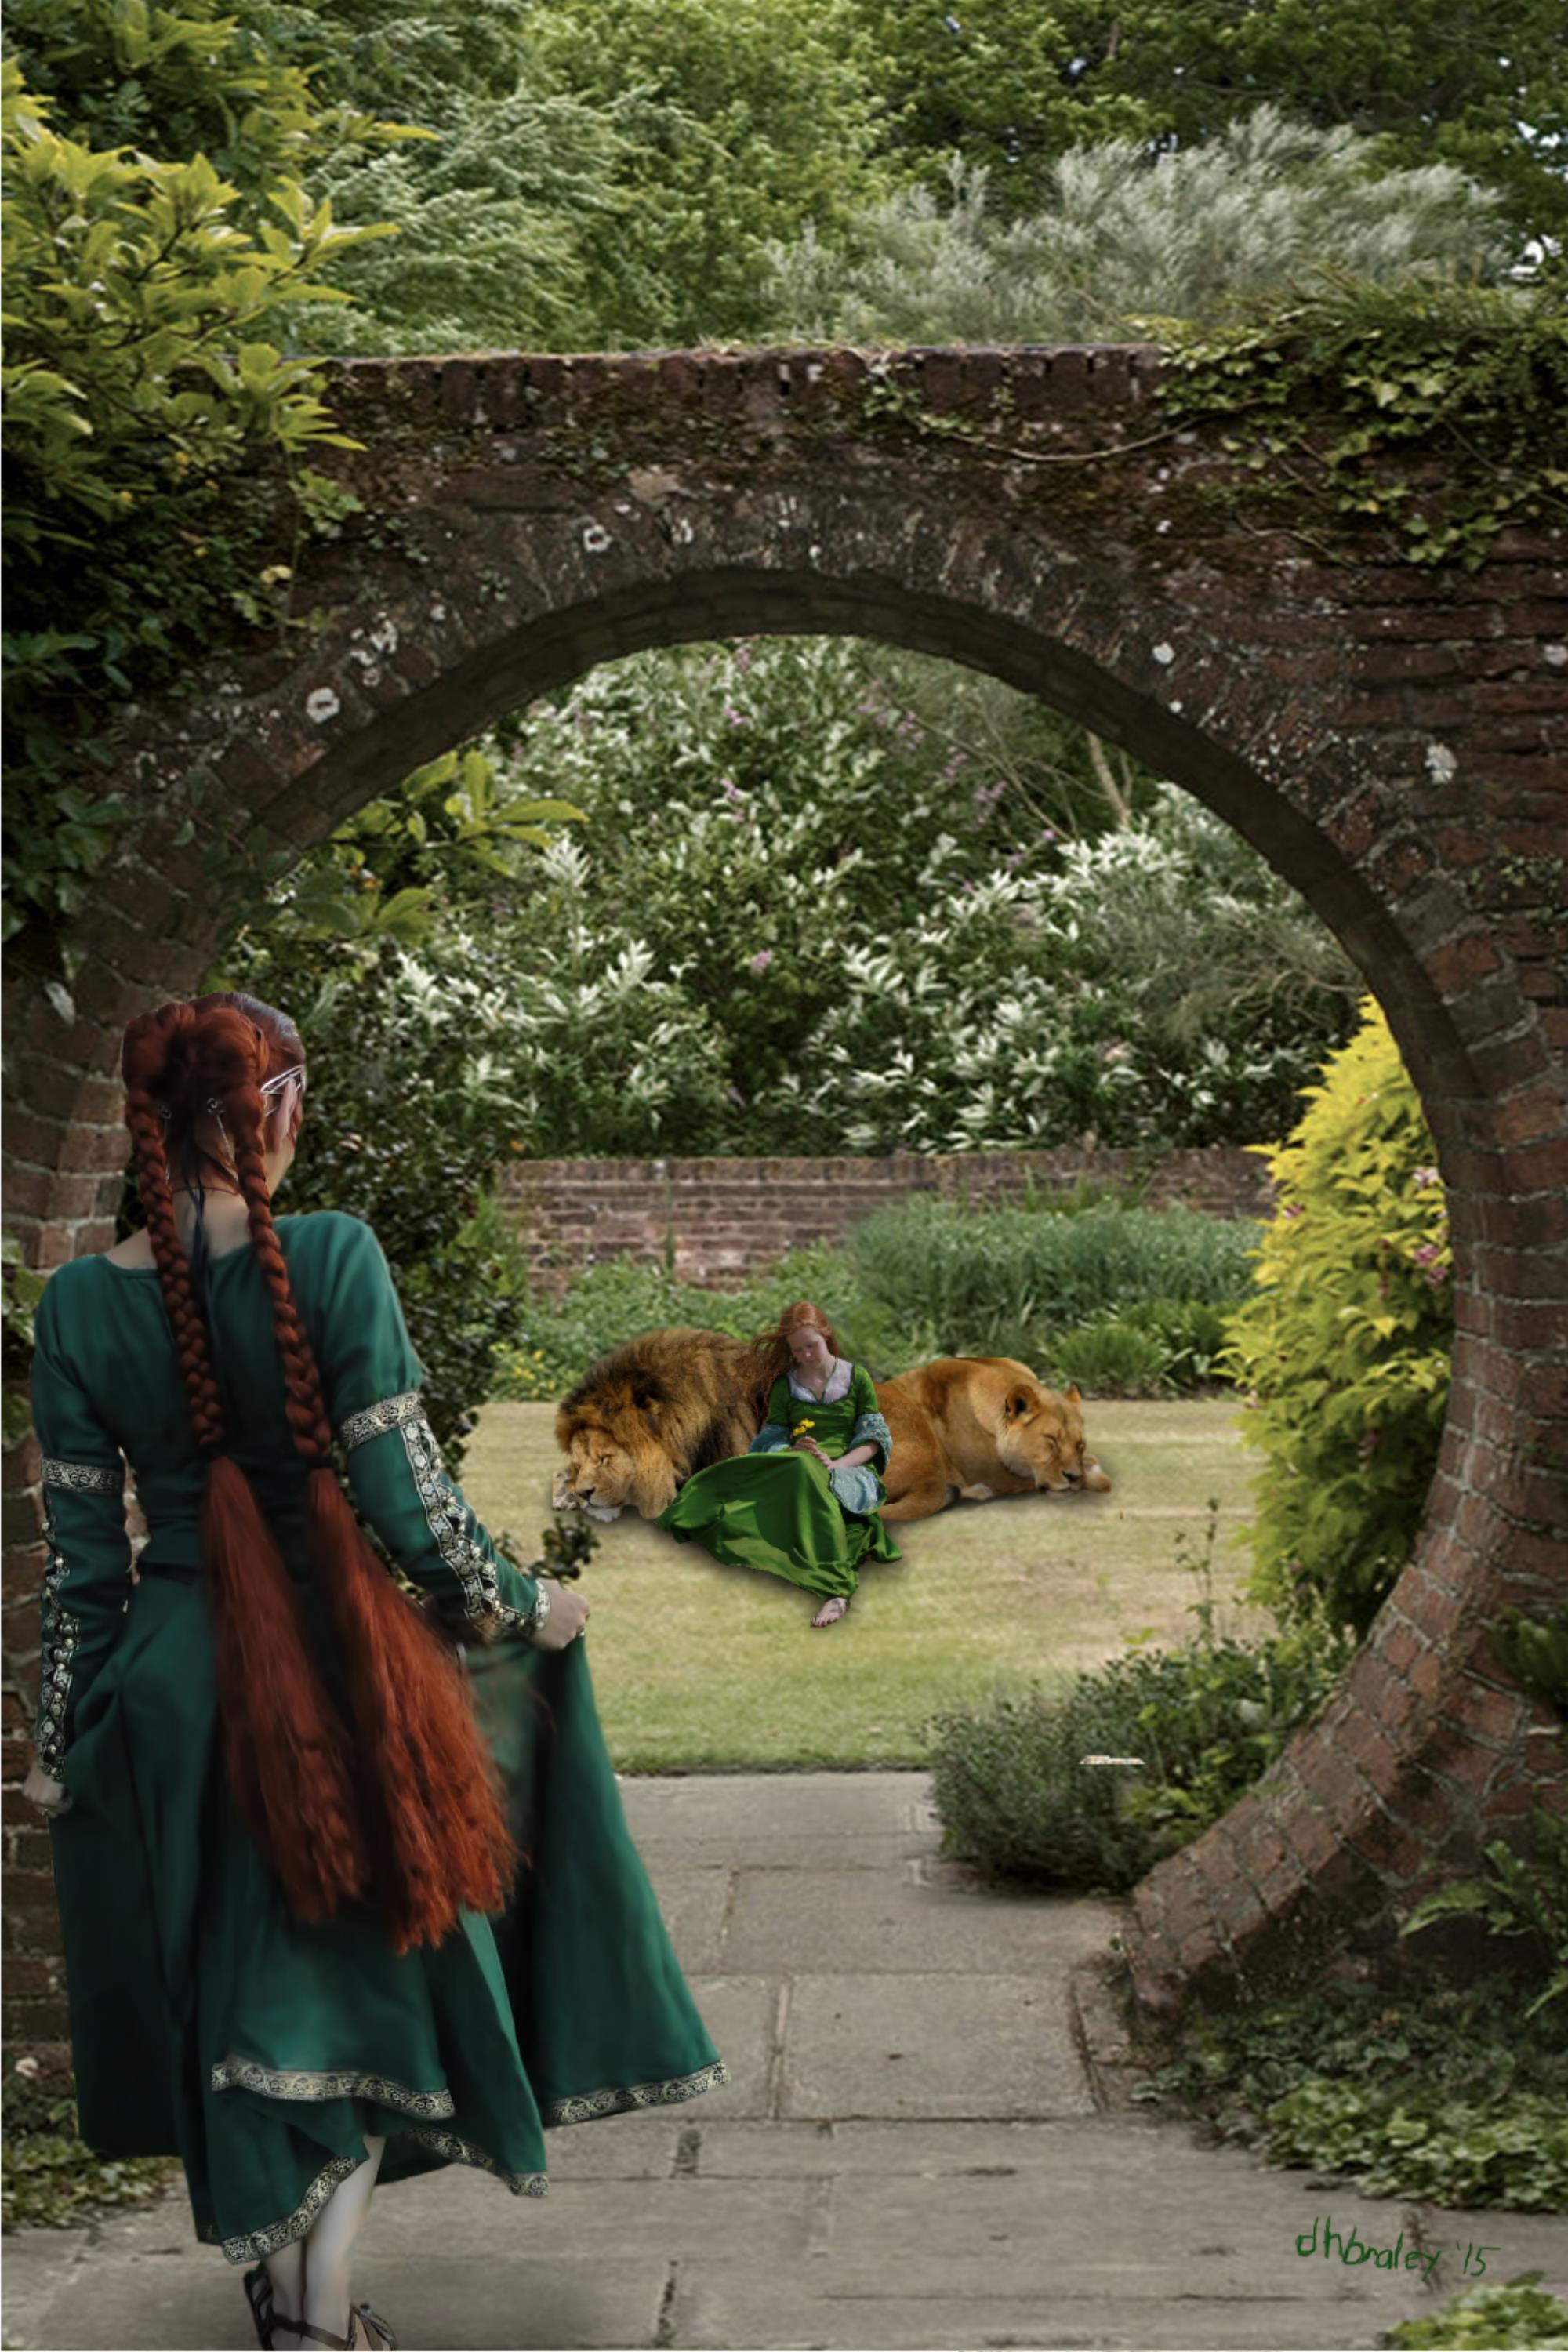 the lions and their girl in the garden by dhbraley on. Black Bedroom Furniture Sets. Home Design Ideas